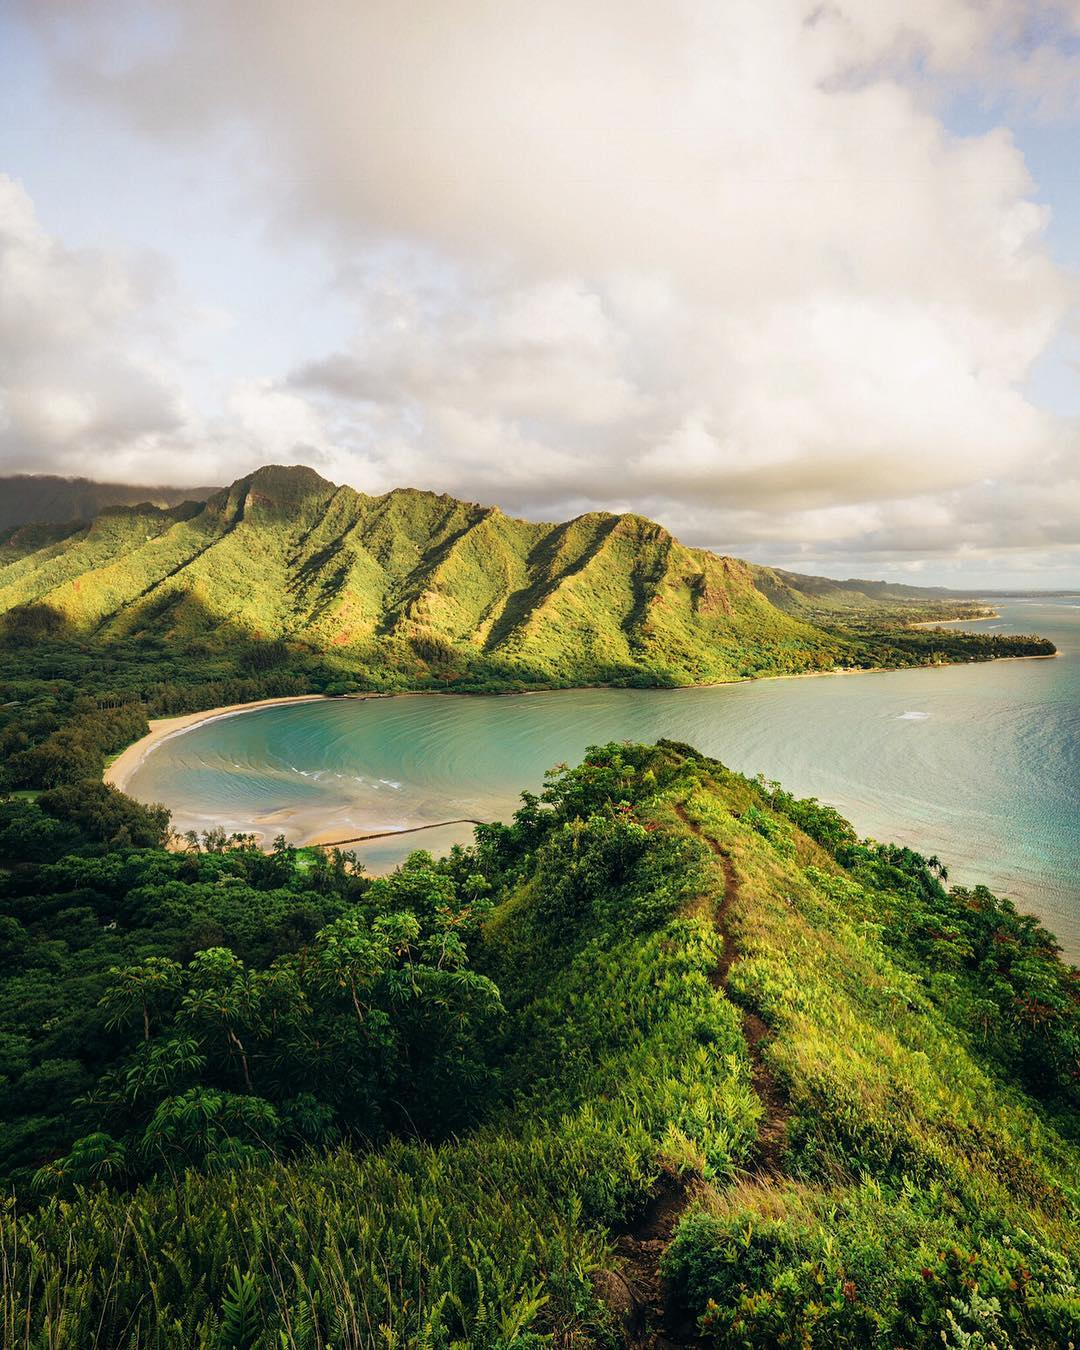 Find the crouching lion - #33 of 50 Best Things to do on Oahu